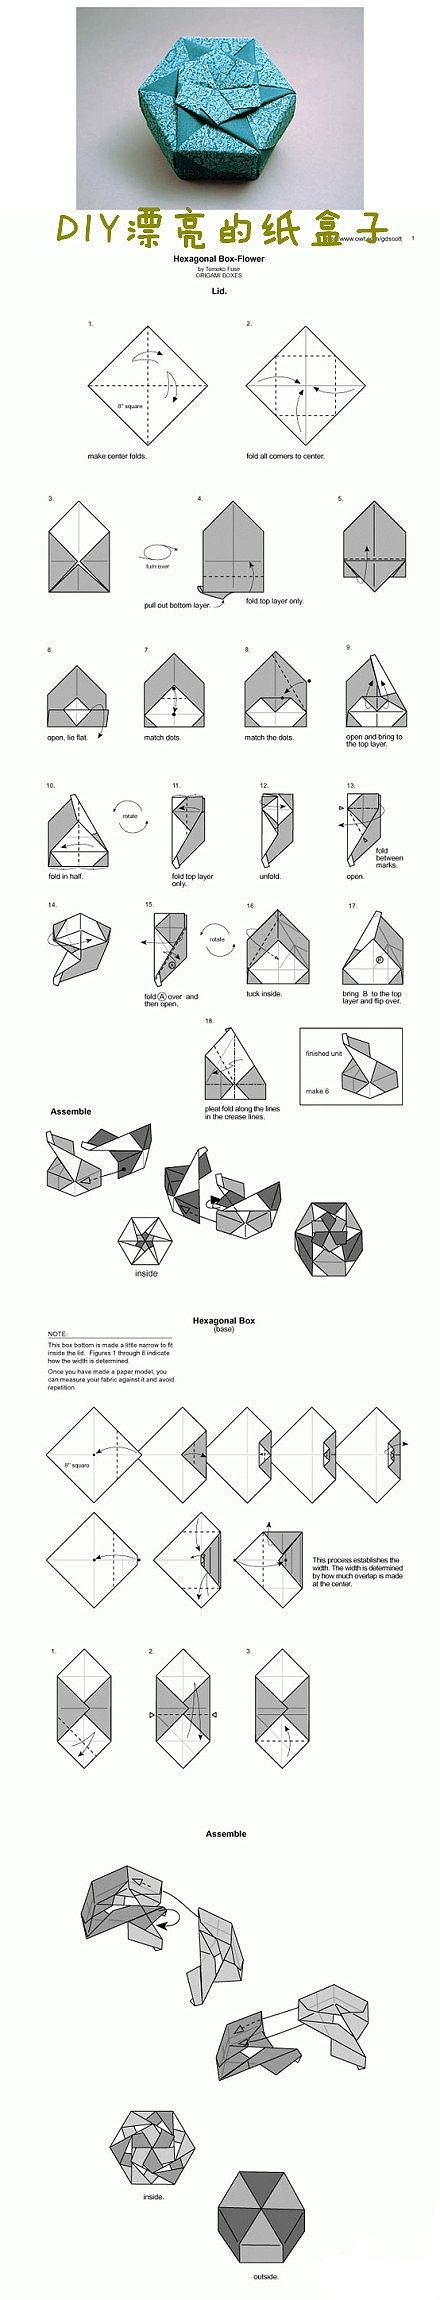 Origami Hexagon Flower Box Don't know if I can make it, but it sure looks cool.